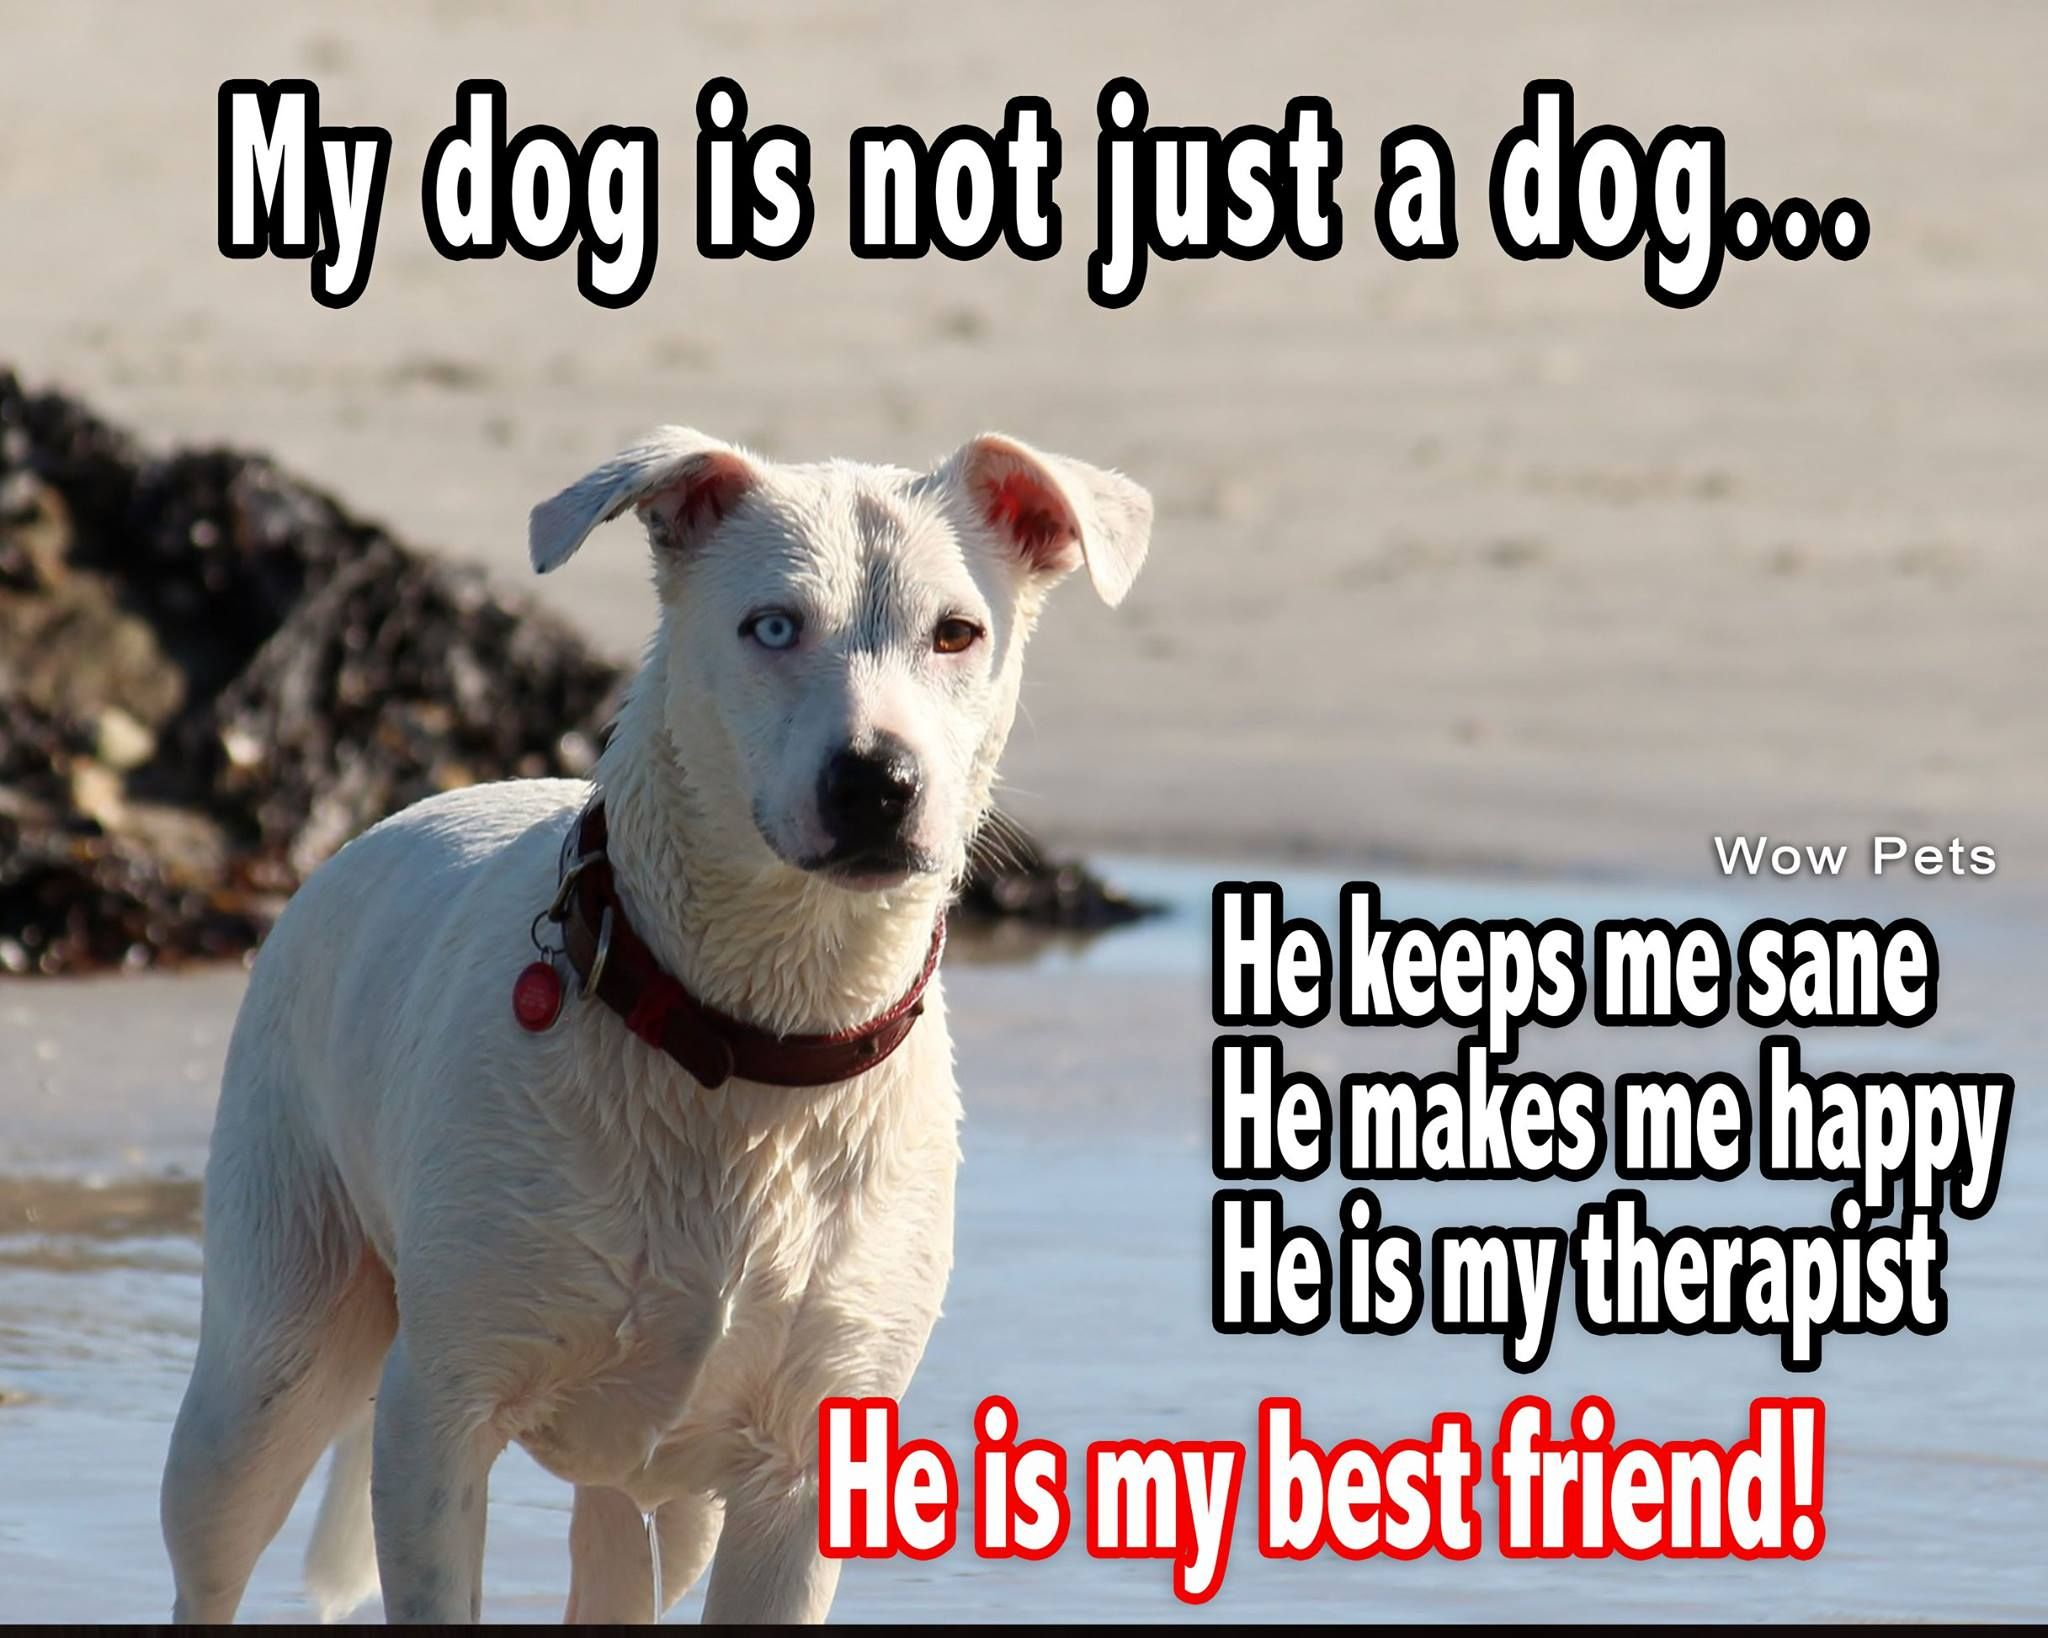 My Dog Is My Best Friend Quotes My Dog Is Not Just A Dog He Is My Best Friend | Animal Quotes  My Dog Is My Best Friend Quotes